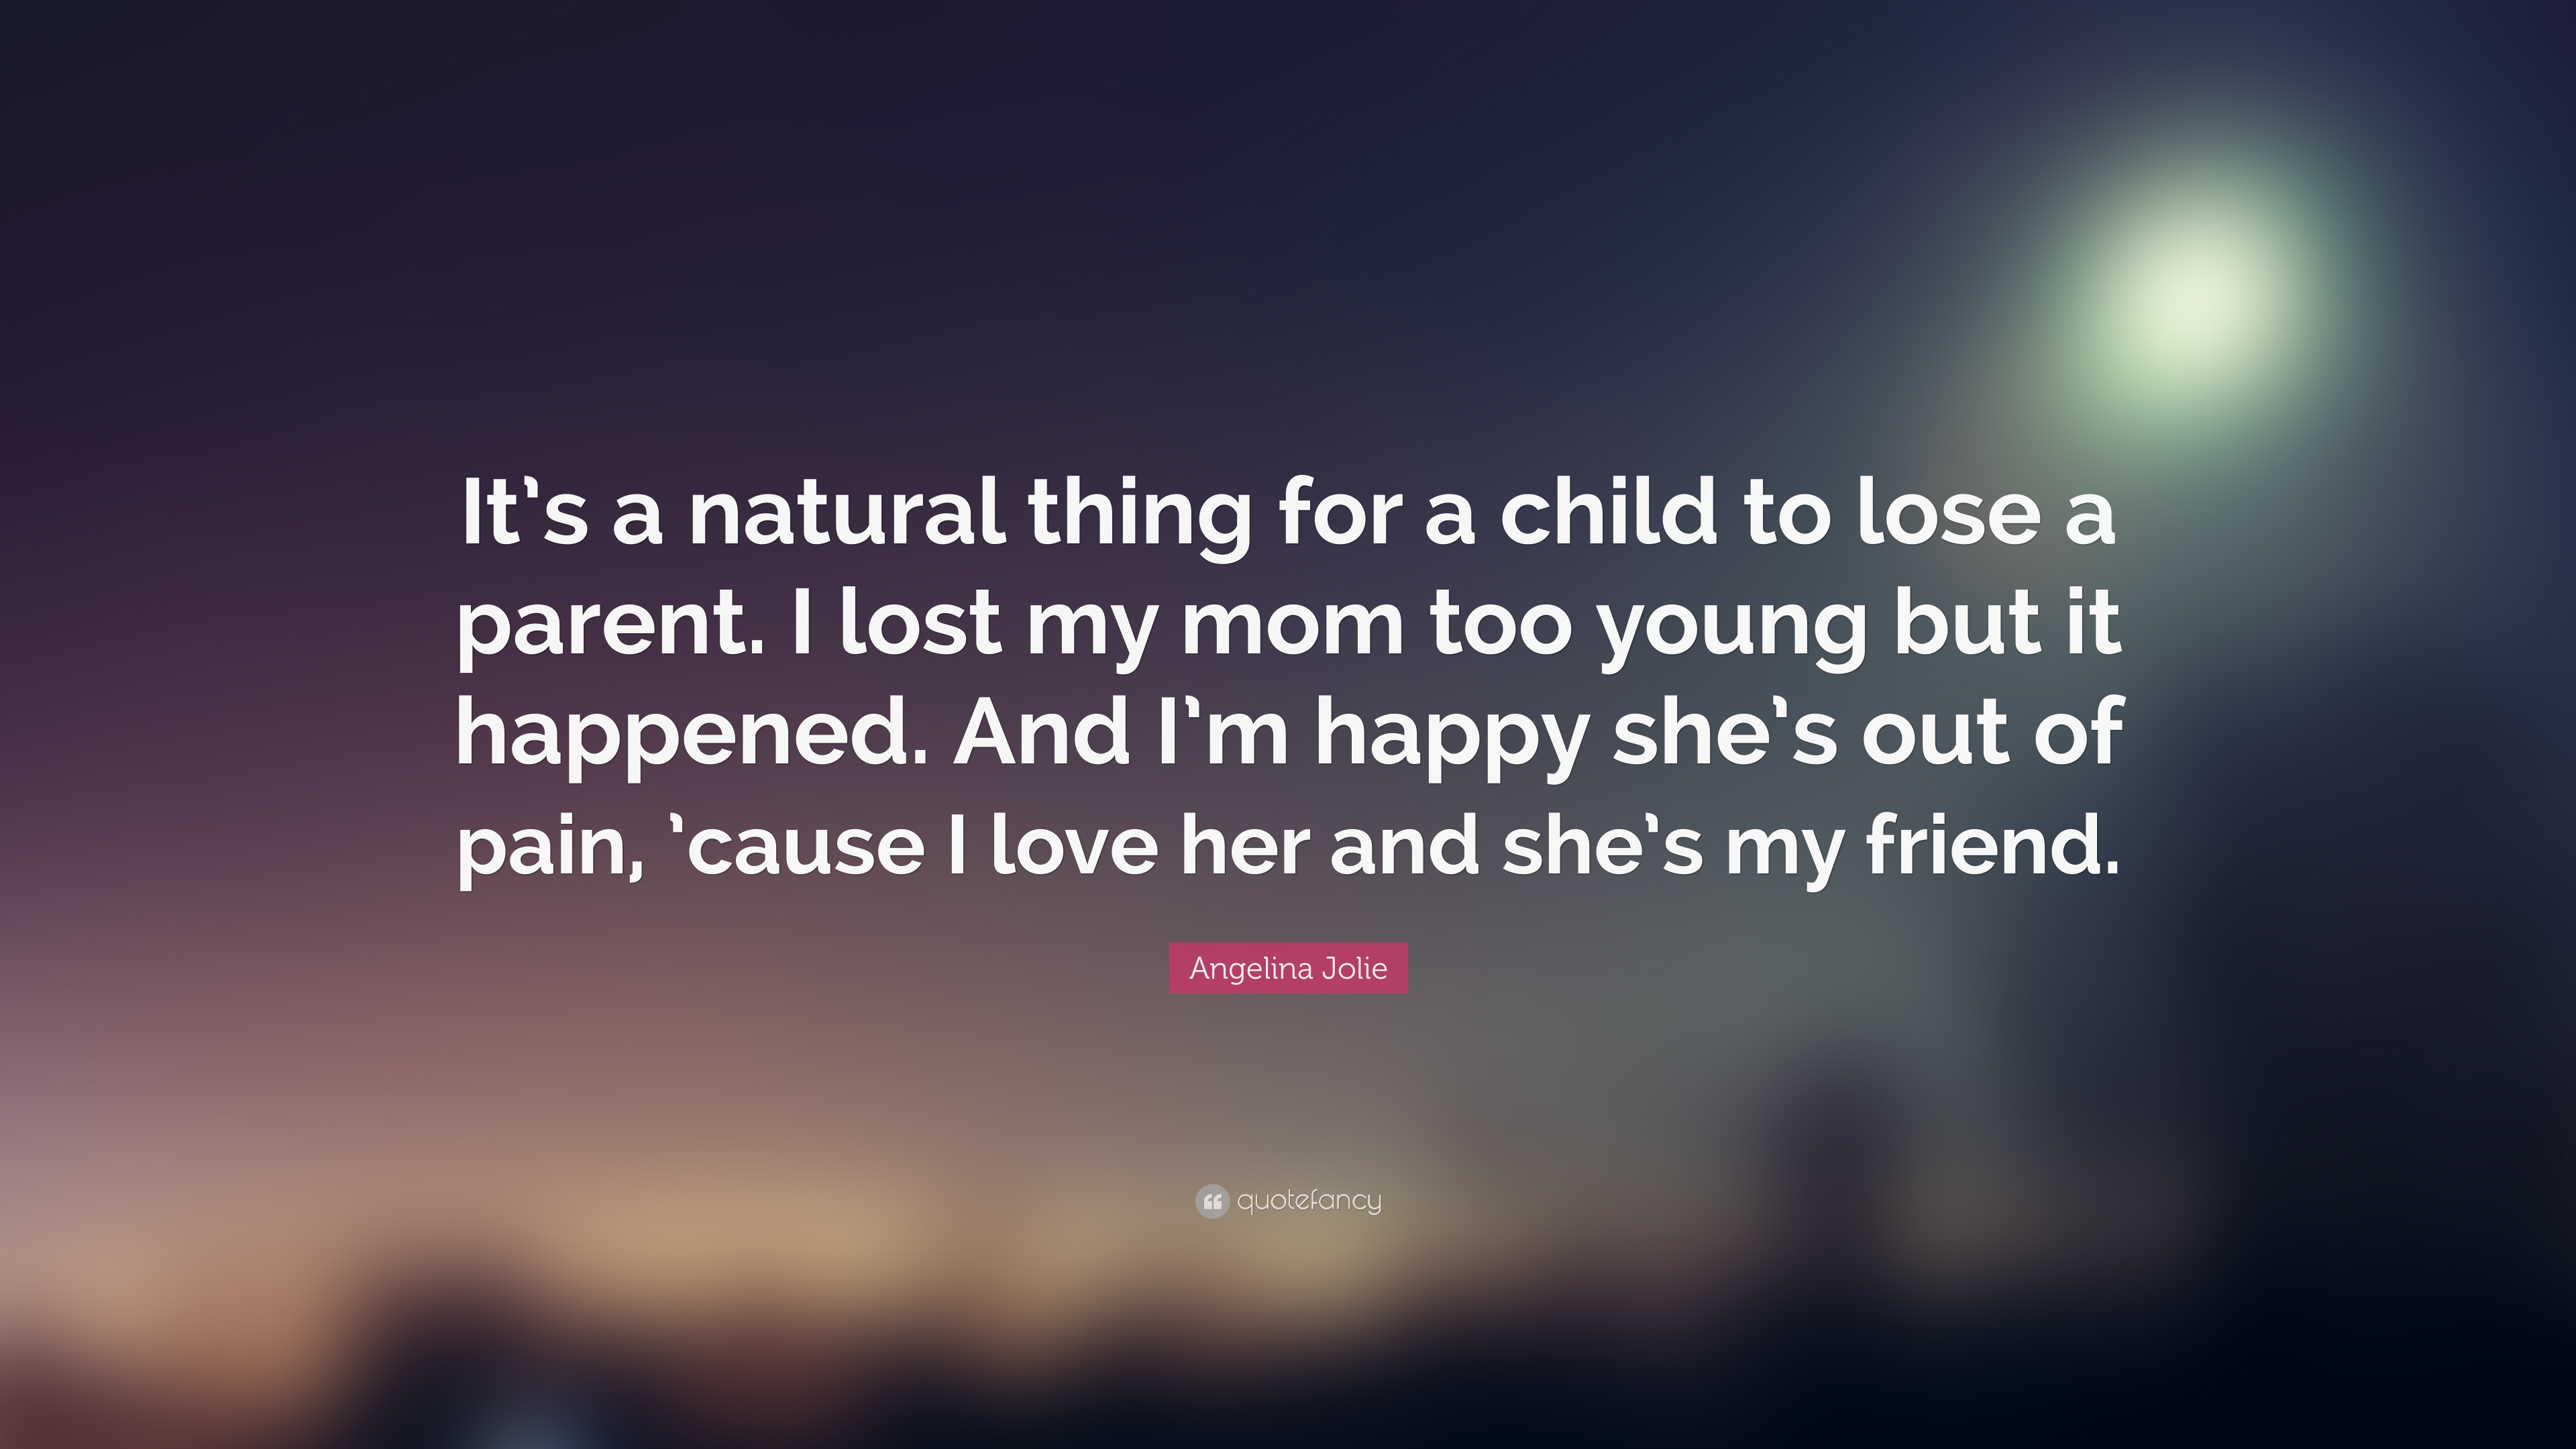 angelina jolie quote it s a natural thing for a child to